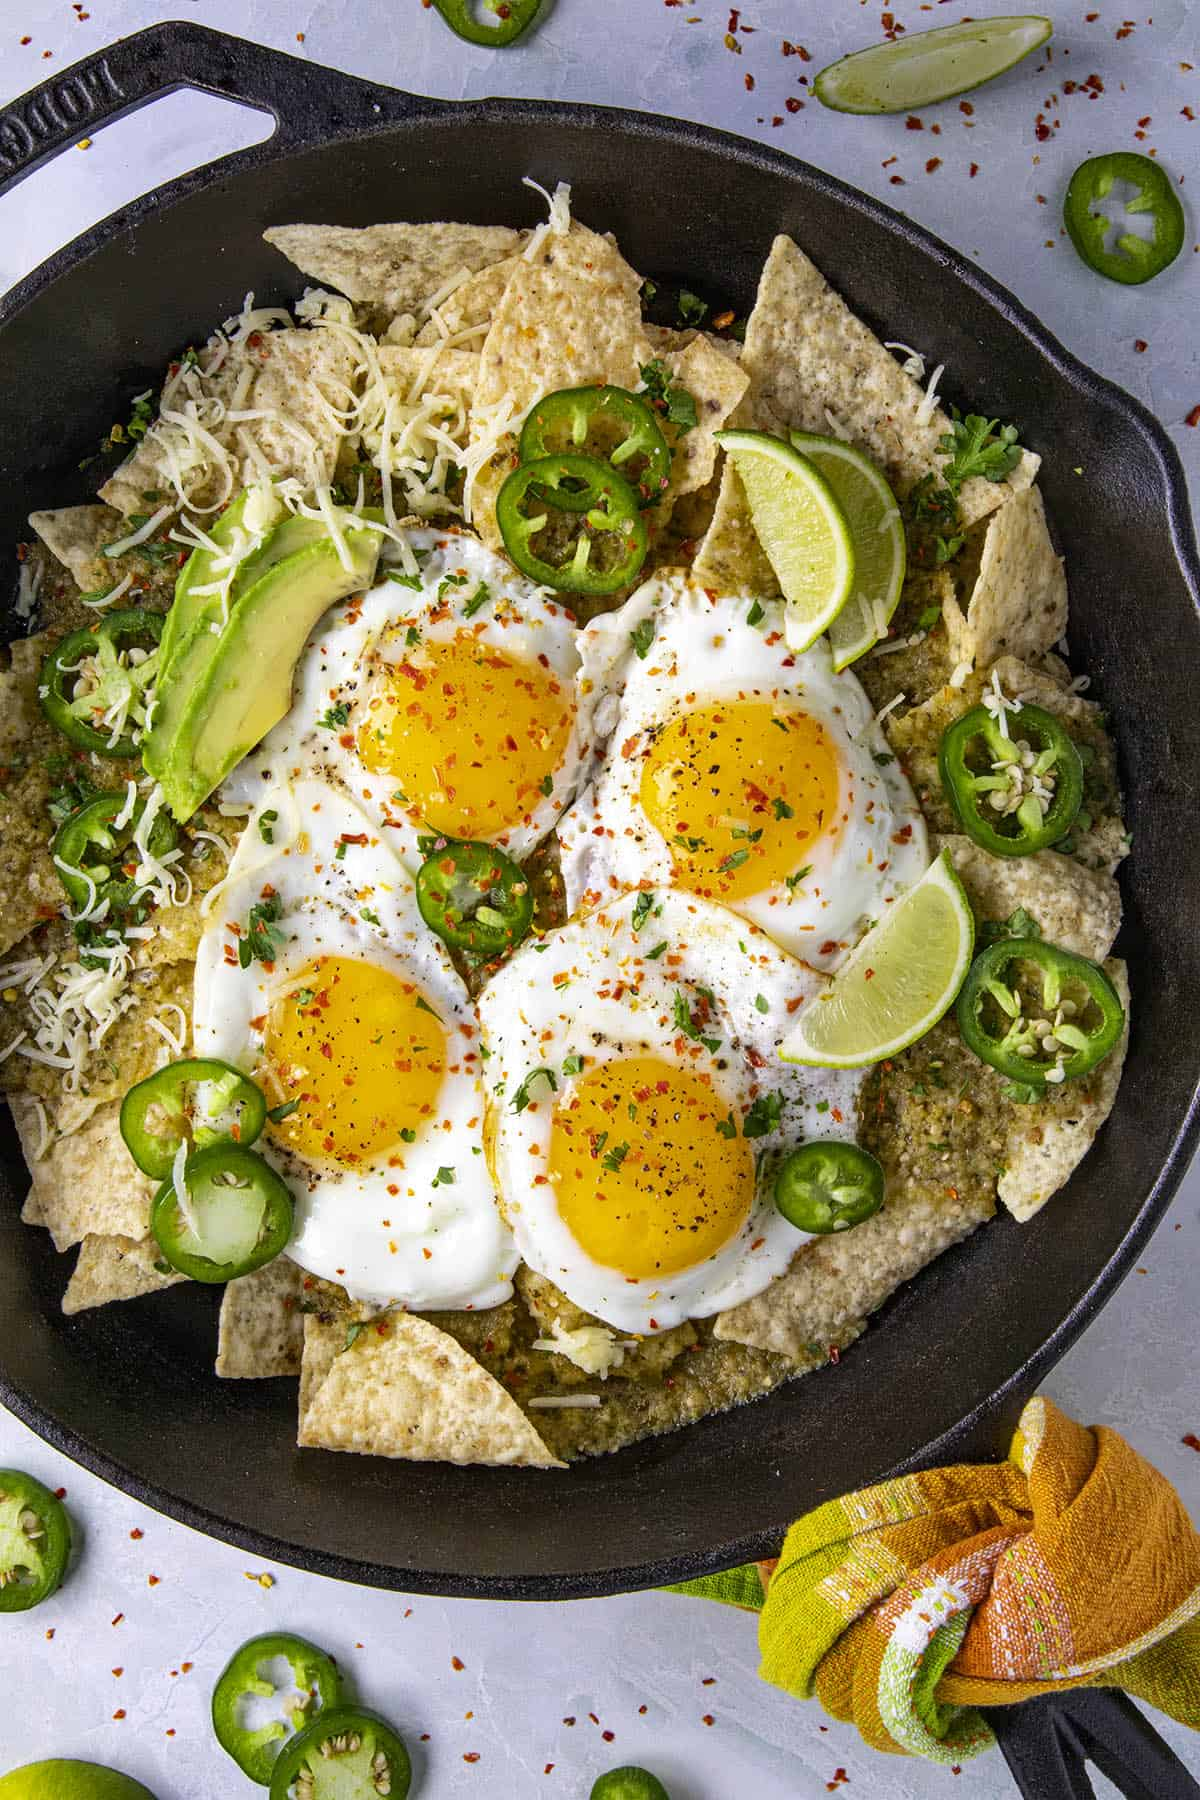 Chilaquiles Verdes ready to serve